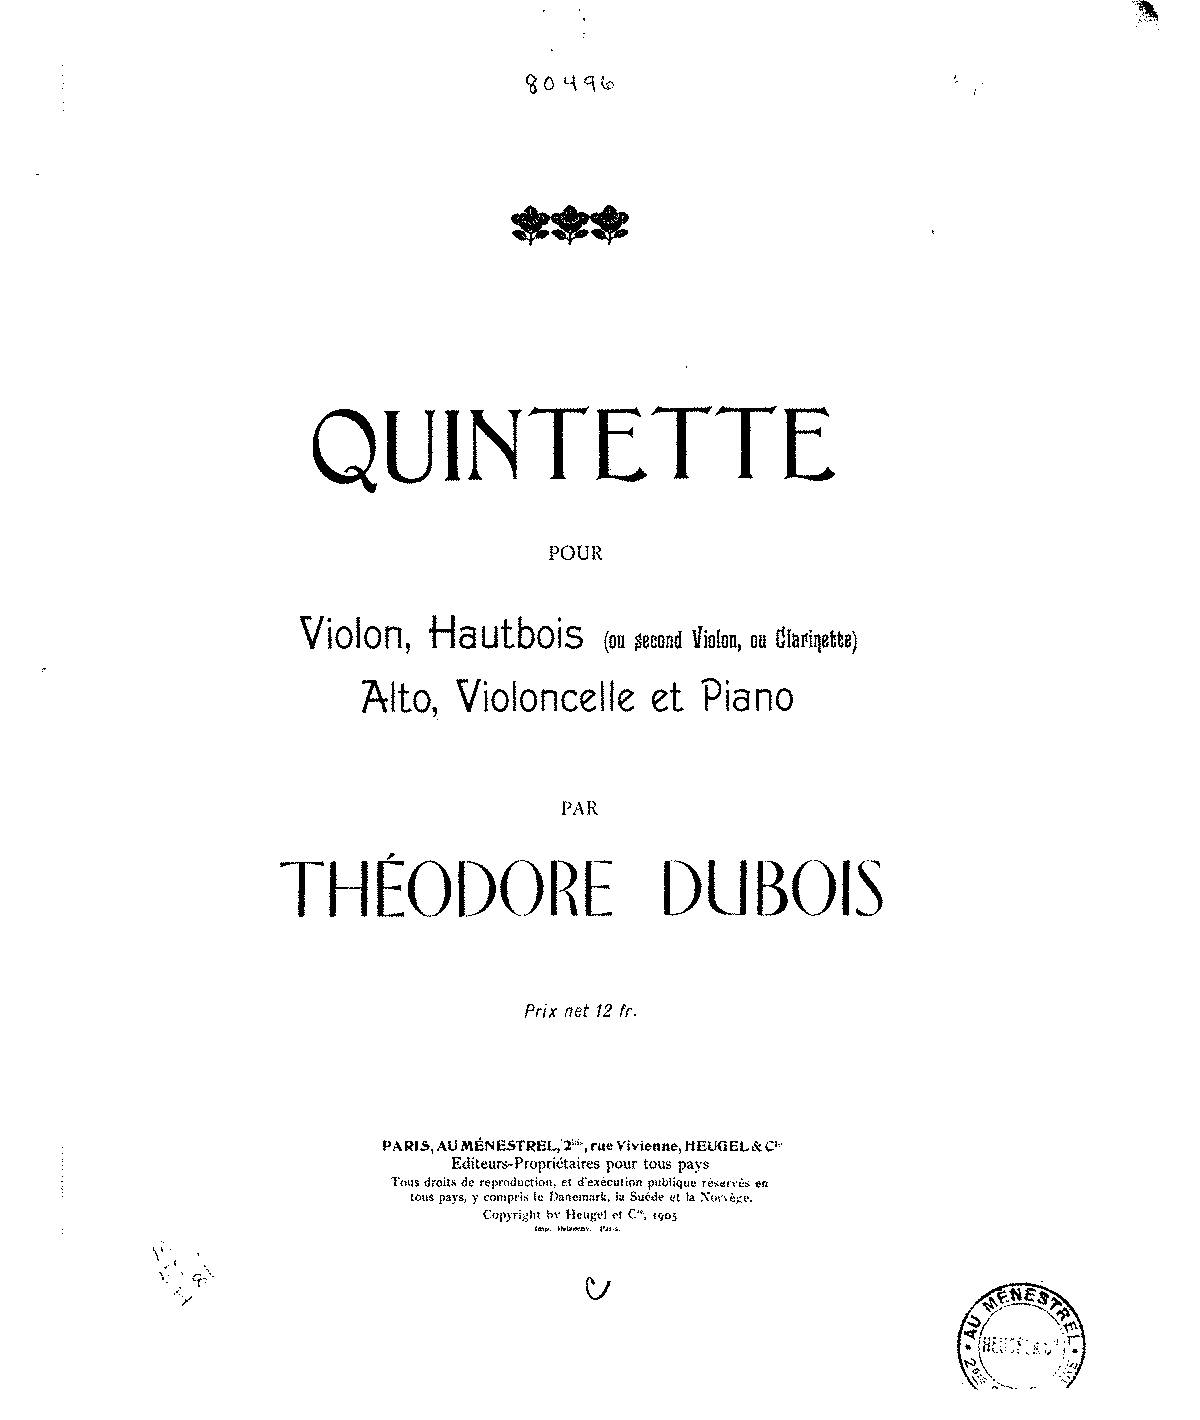 Dubois - Quintette for Violin, Oboe, Viola, Cello, Piano (score & parts).pdf